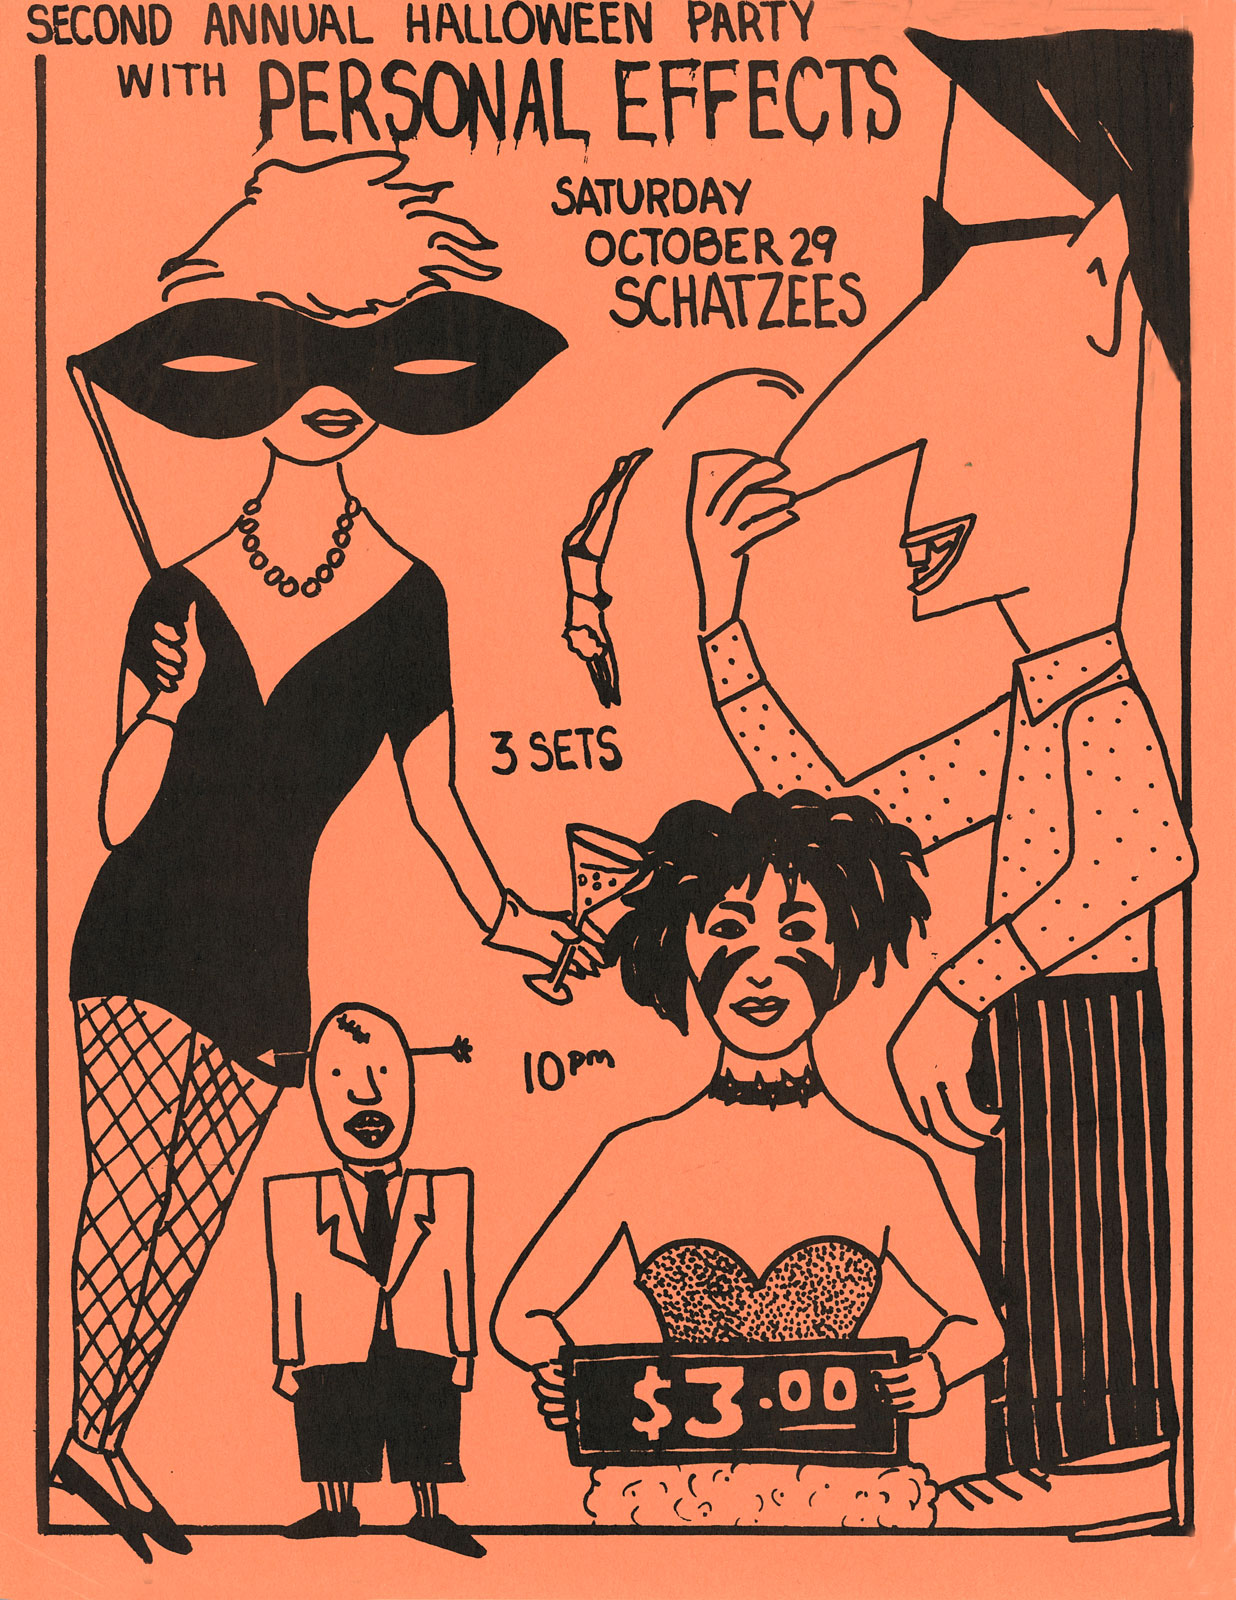 Poster for Personal Effects at Schatzees in Rochester, New York on Halloween 10.29.1983